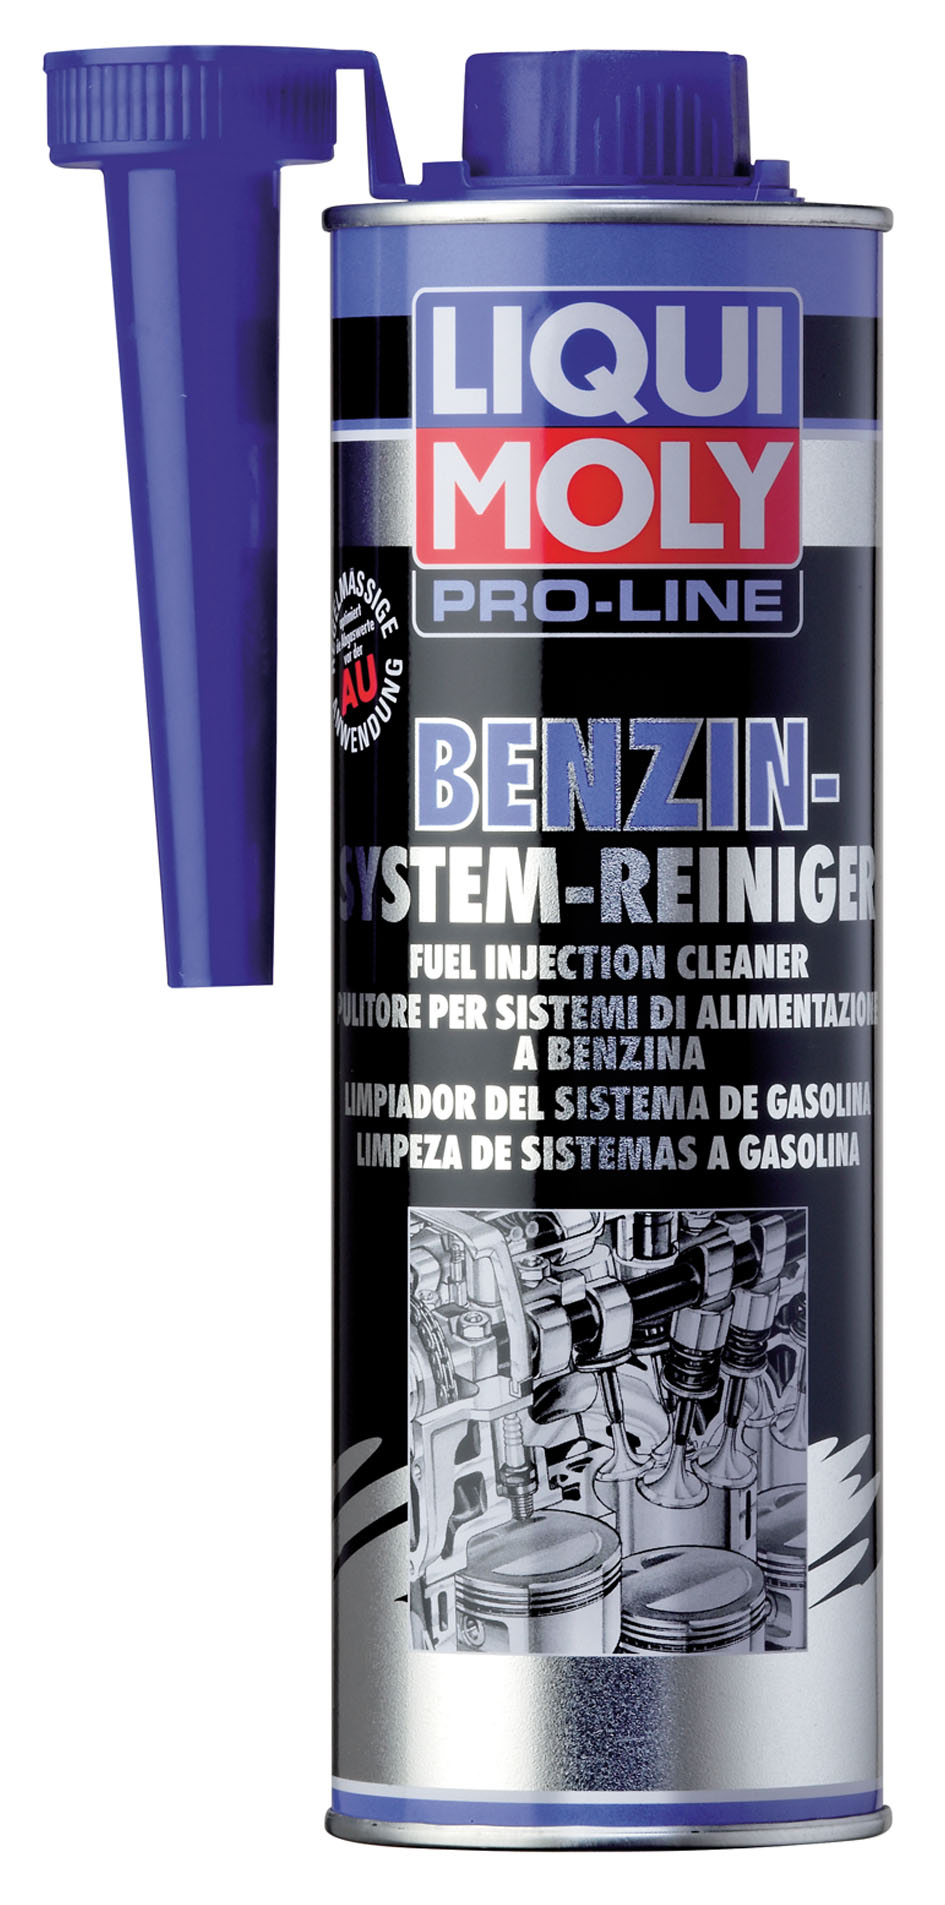 Liqui Moly Proline Fuel Injection Cleaner Additives